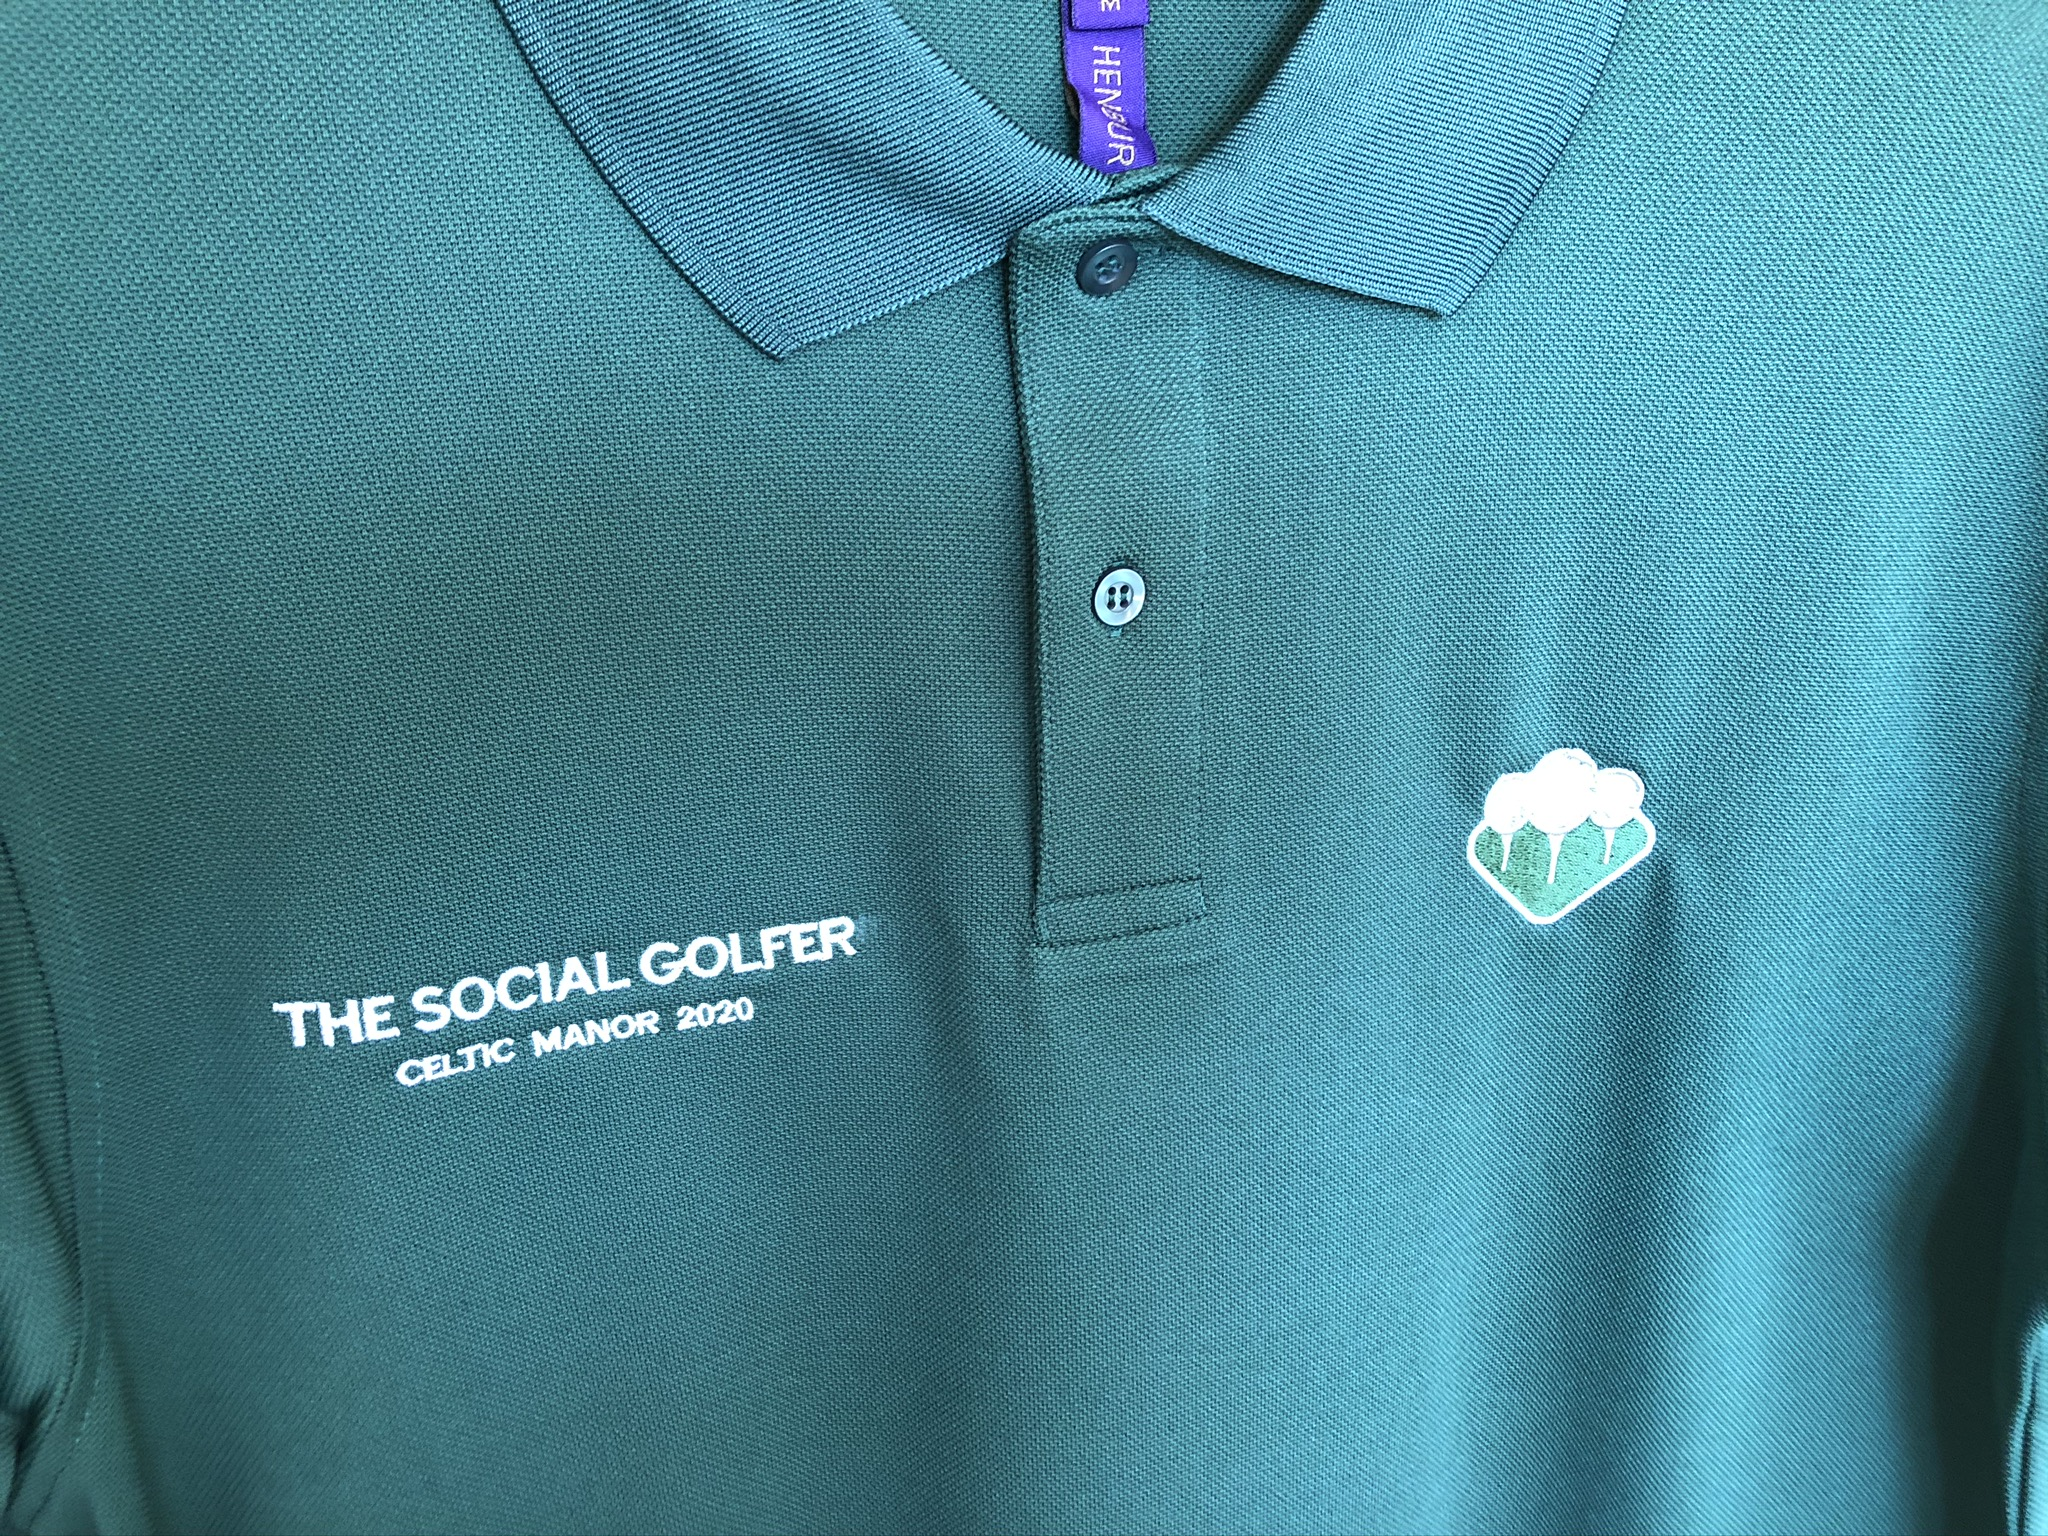 Celtic Manor 2020 - The Social Golfer